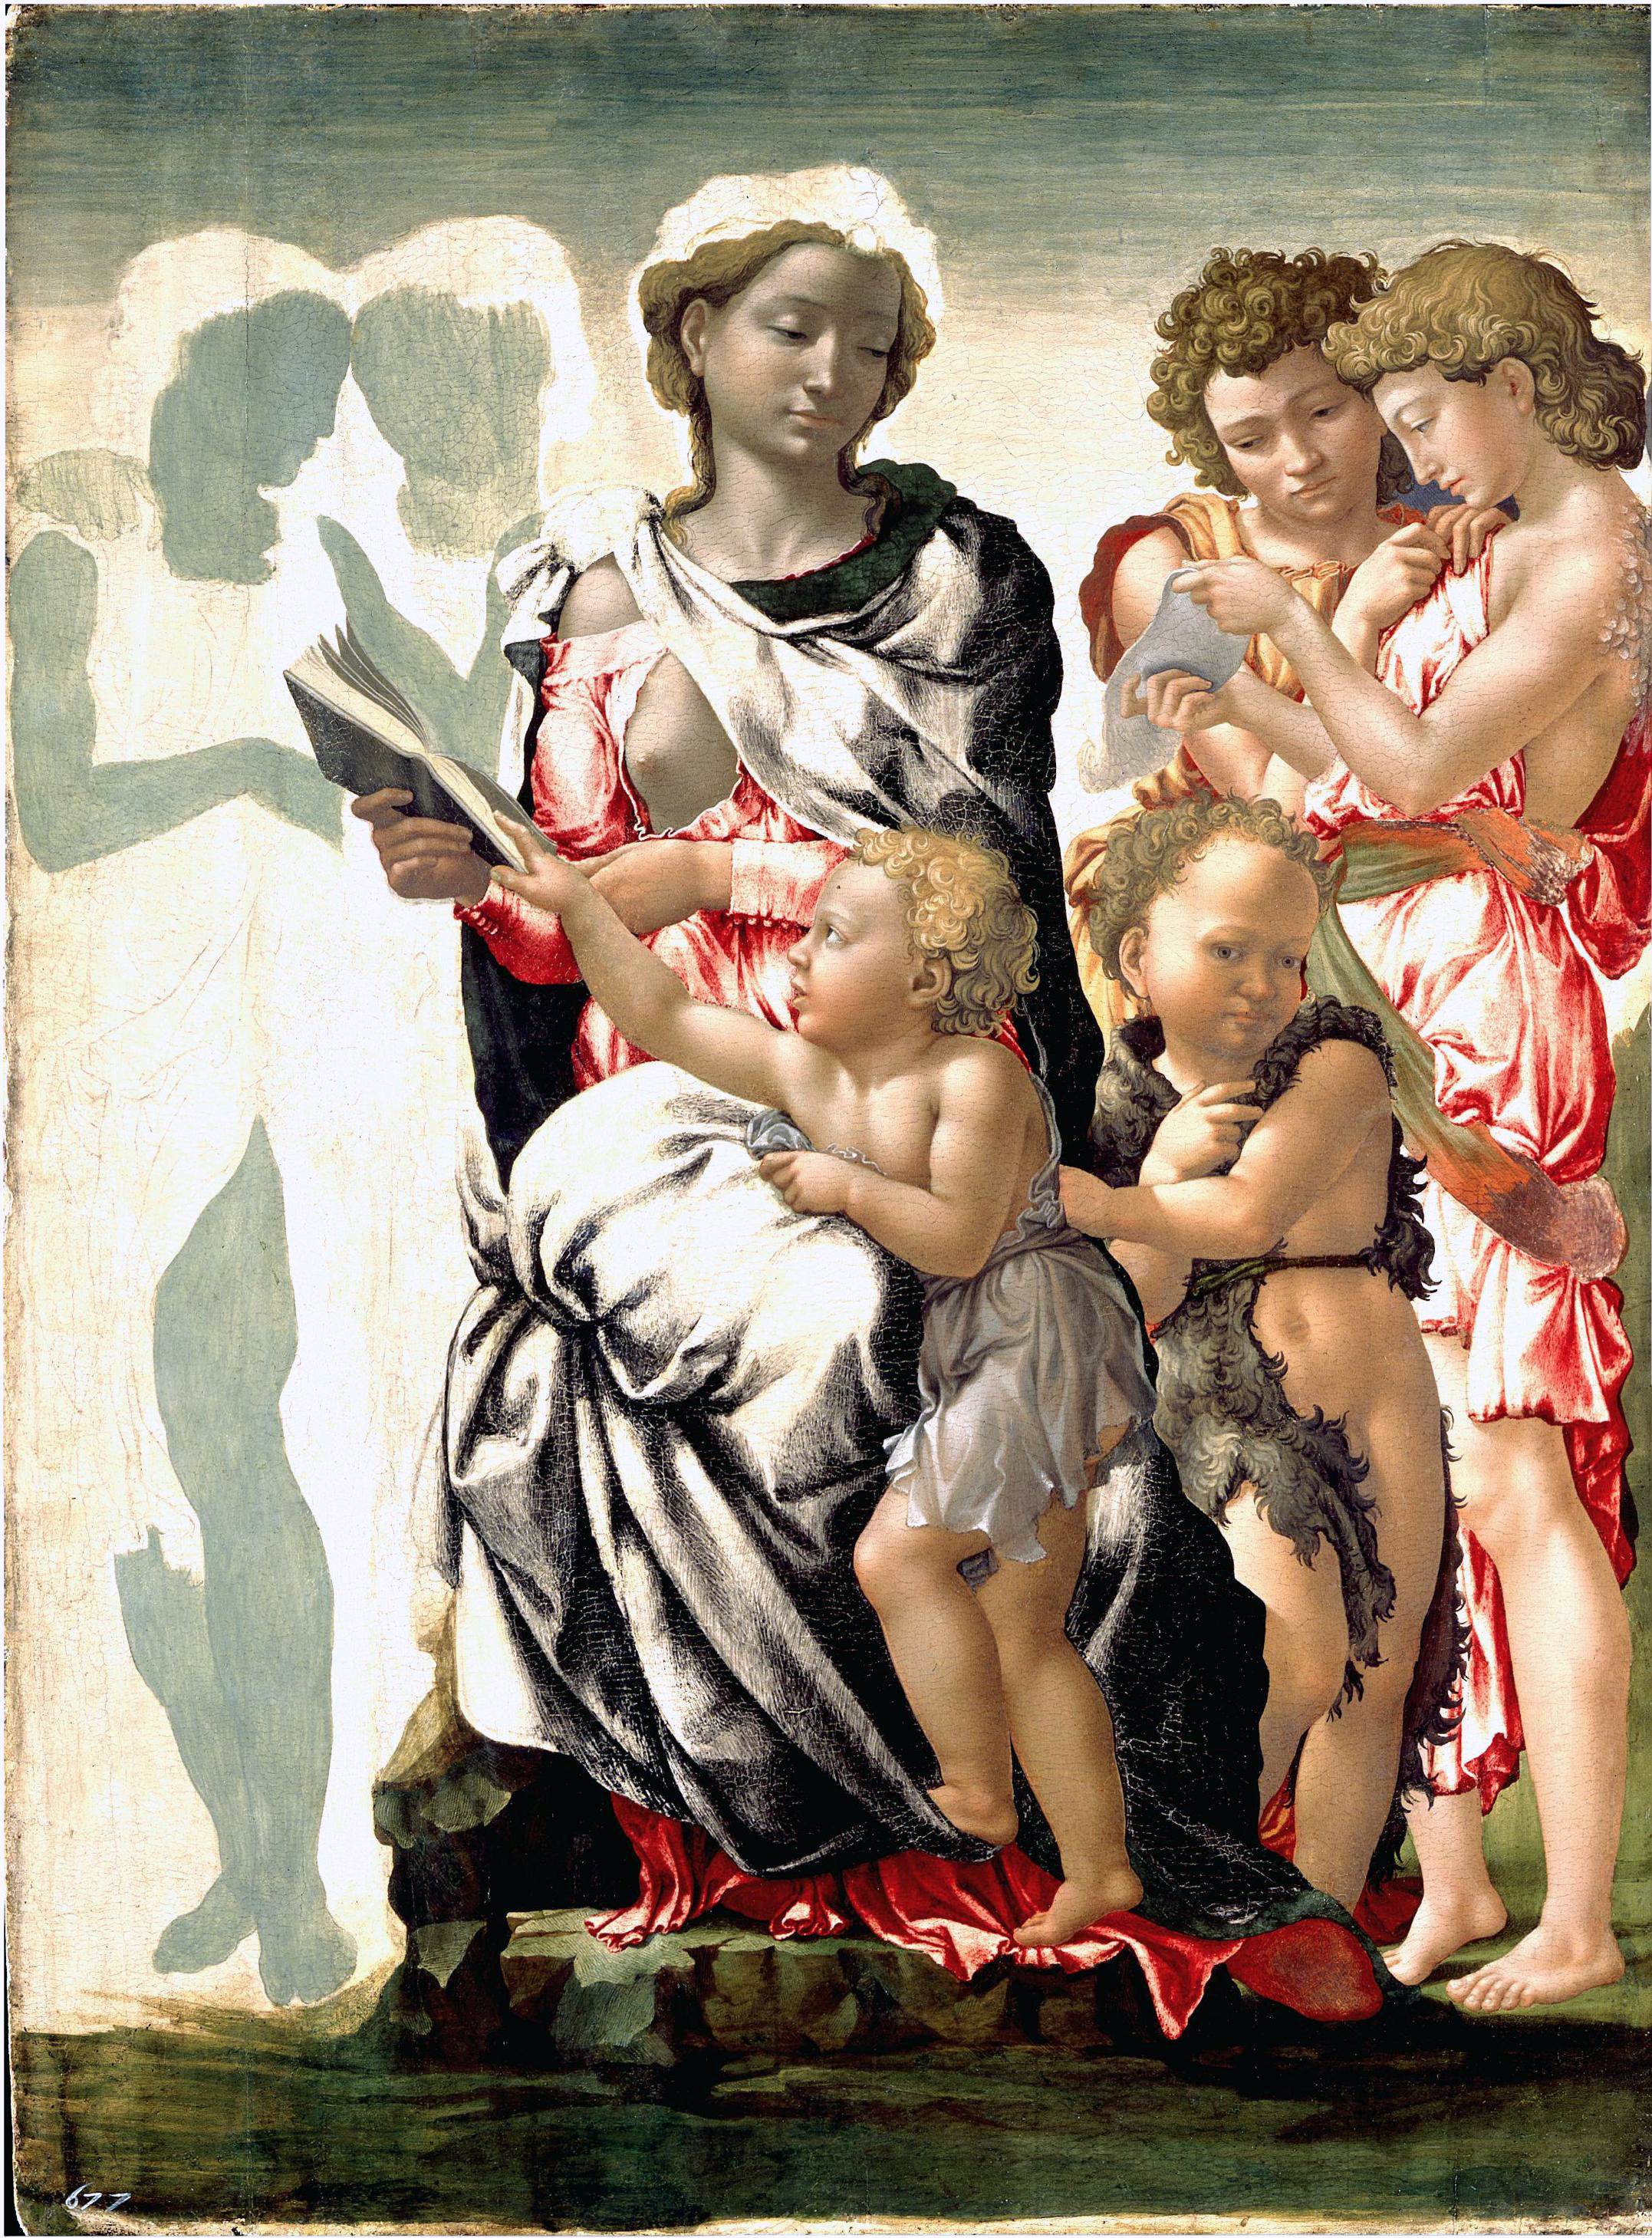 https://i2.wp.com/upload.wikimedia.org/wikipedia/commons/0/01/MICHELANGELO_-_Manchester_Madonna_adjusted.JPG